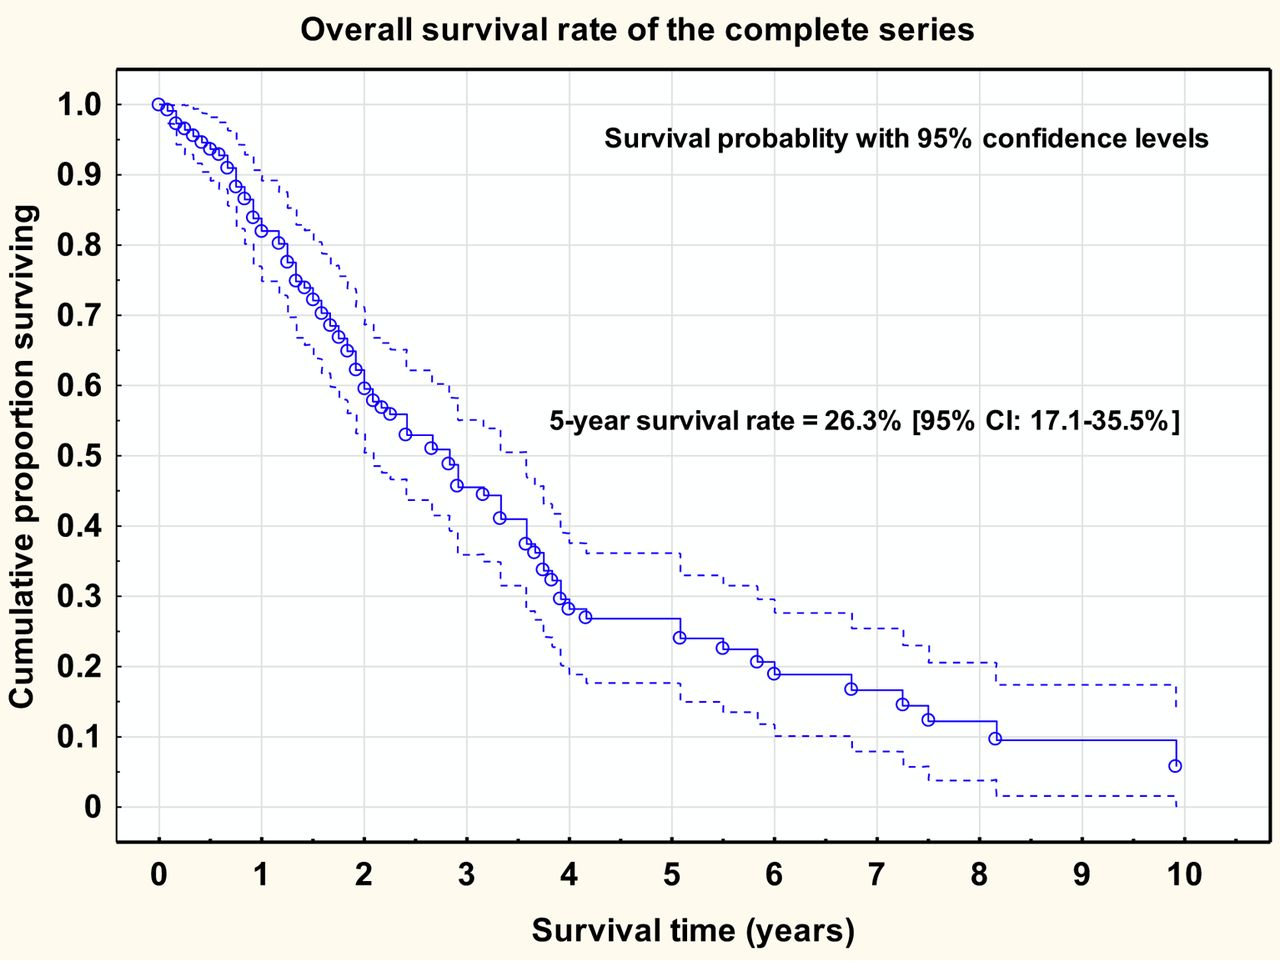 Quality Indicators And Survival Outcome In Stage Iiib Ivb Epithelial Ovarian Cancer Treated At A Single Institution